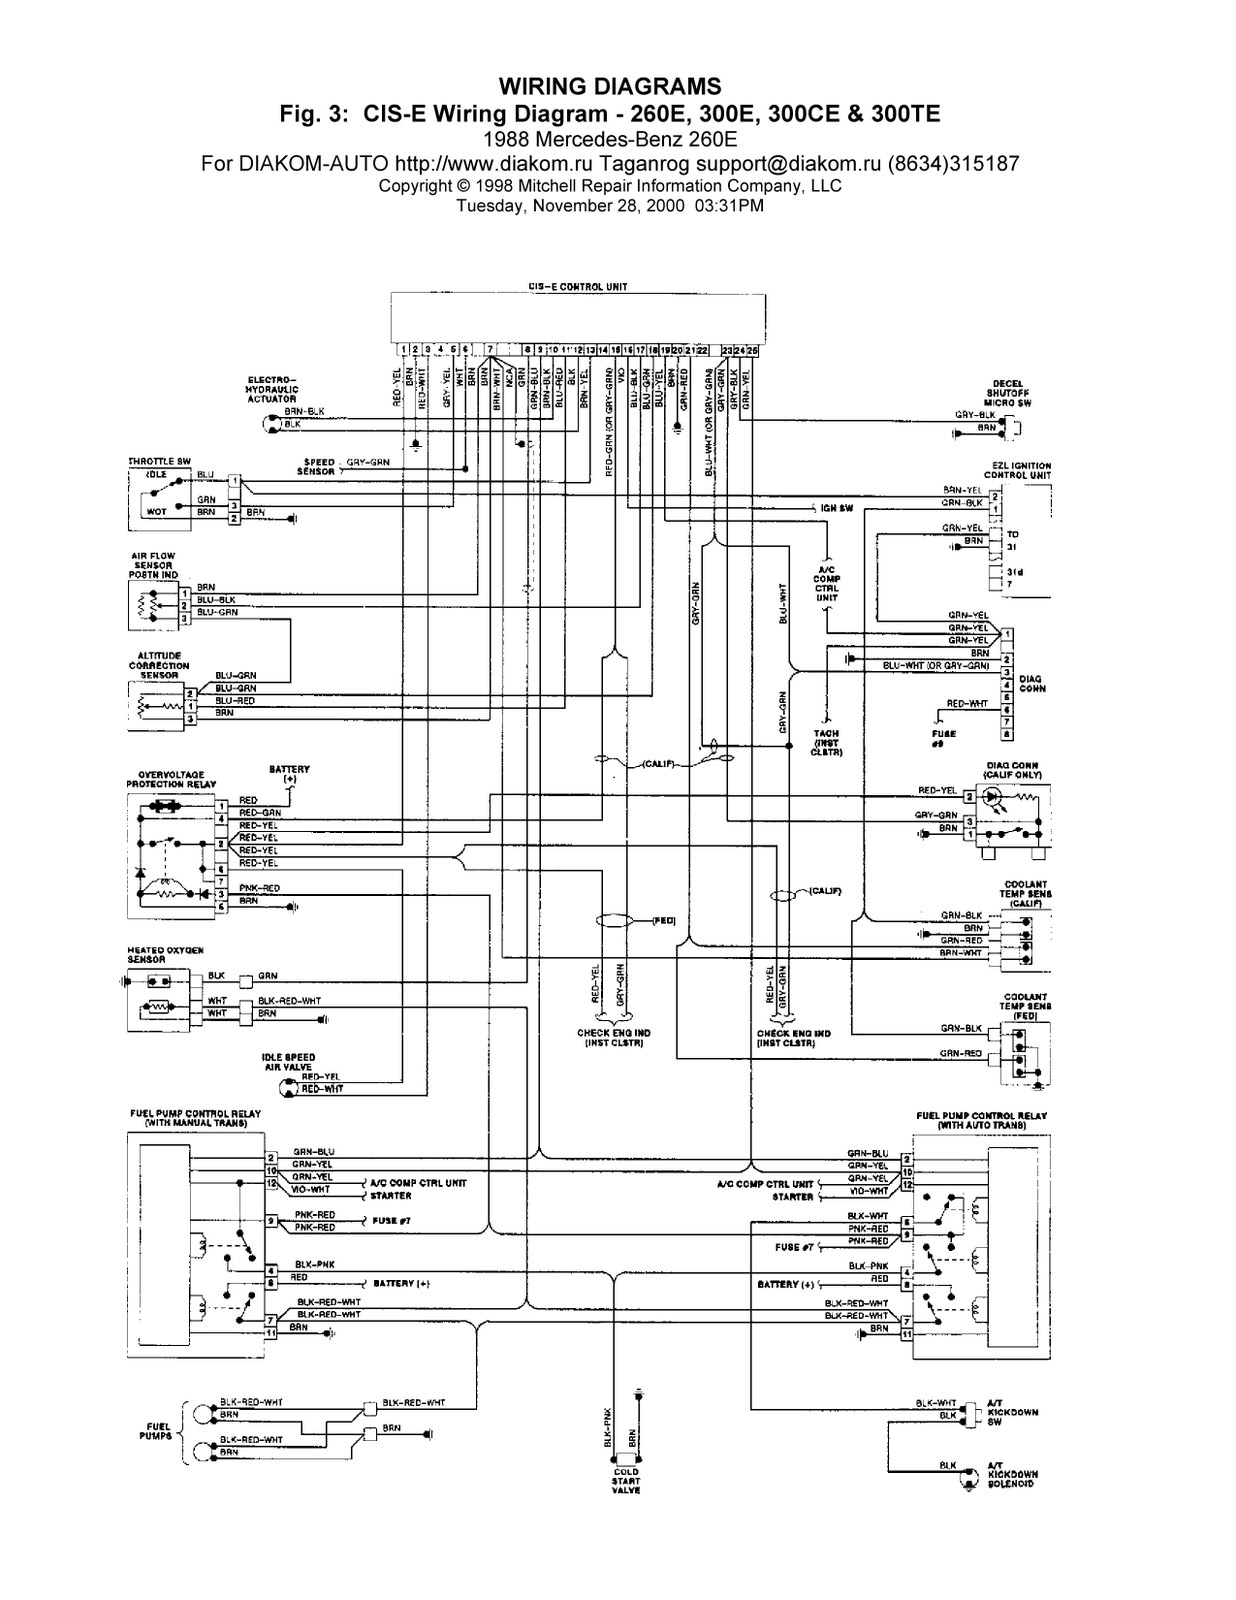 Mercedes Benz Wiring Diagrams Free : Ford transit connect fuse box diagram free engine